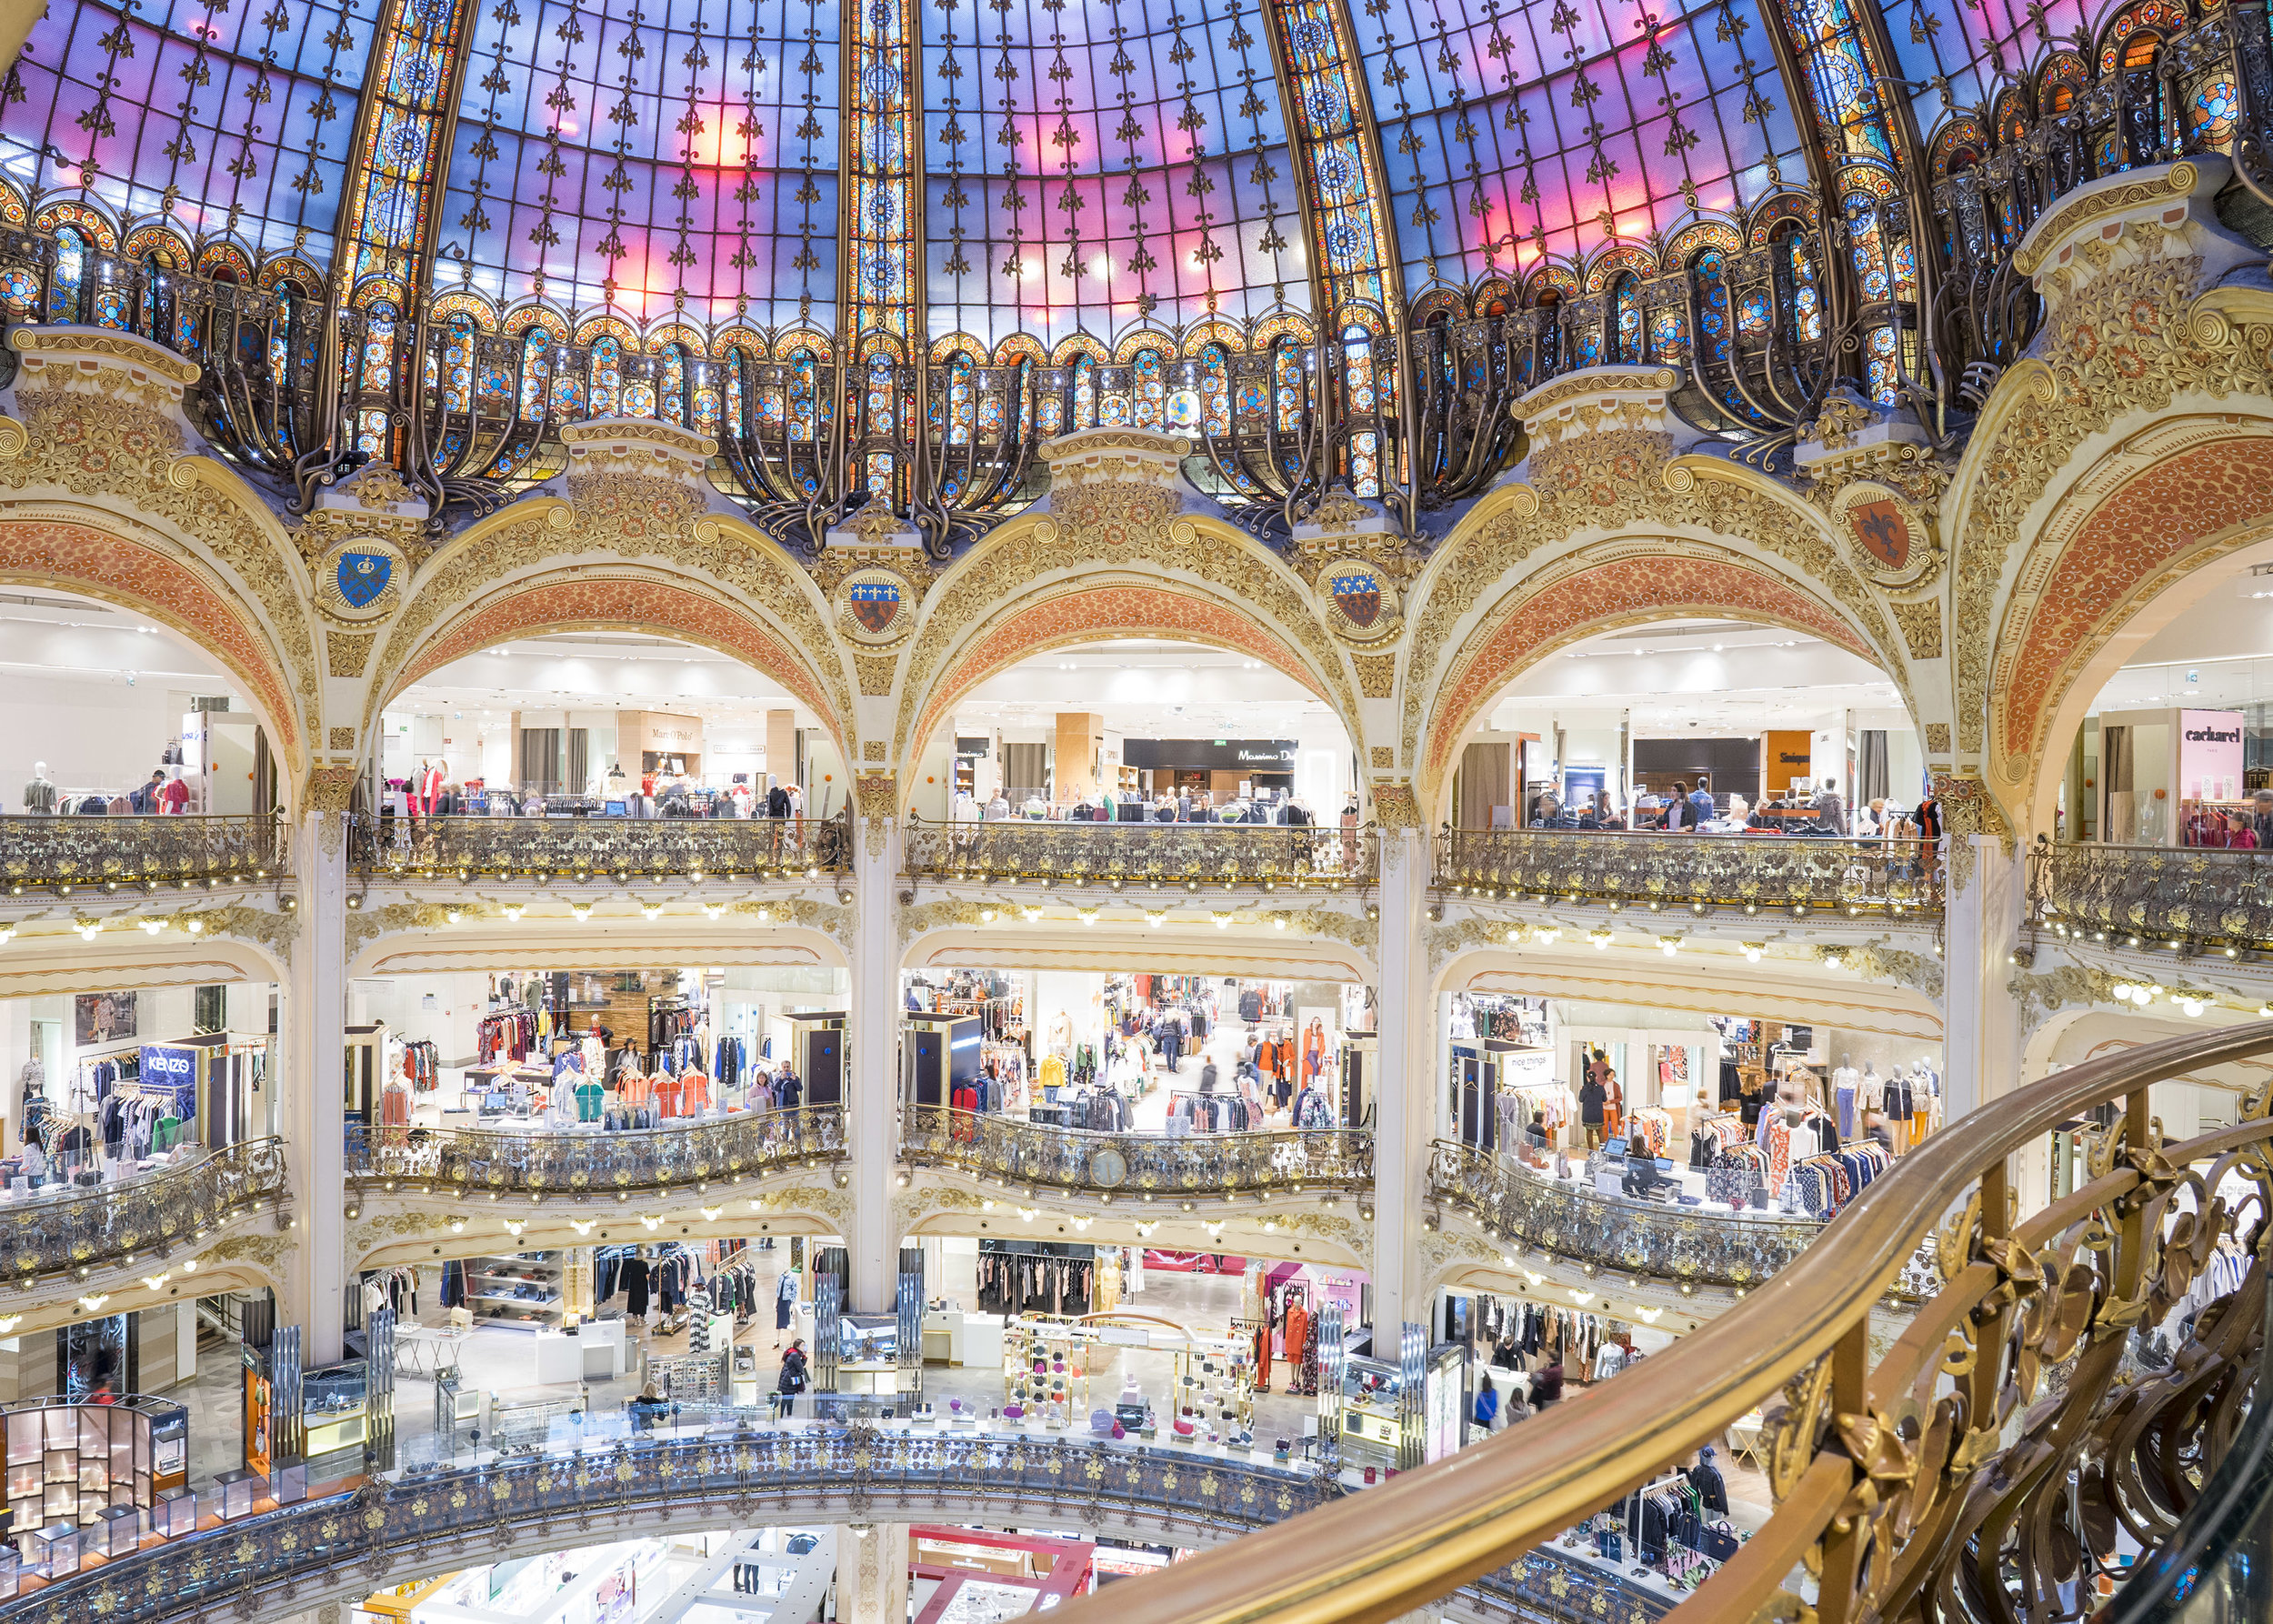 France : Galeries Lafayette in Paris reopen on Saturday - Luxus Plus